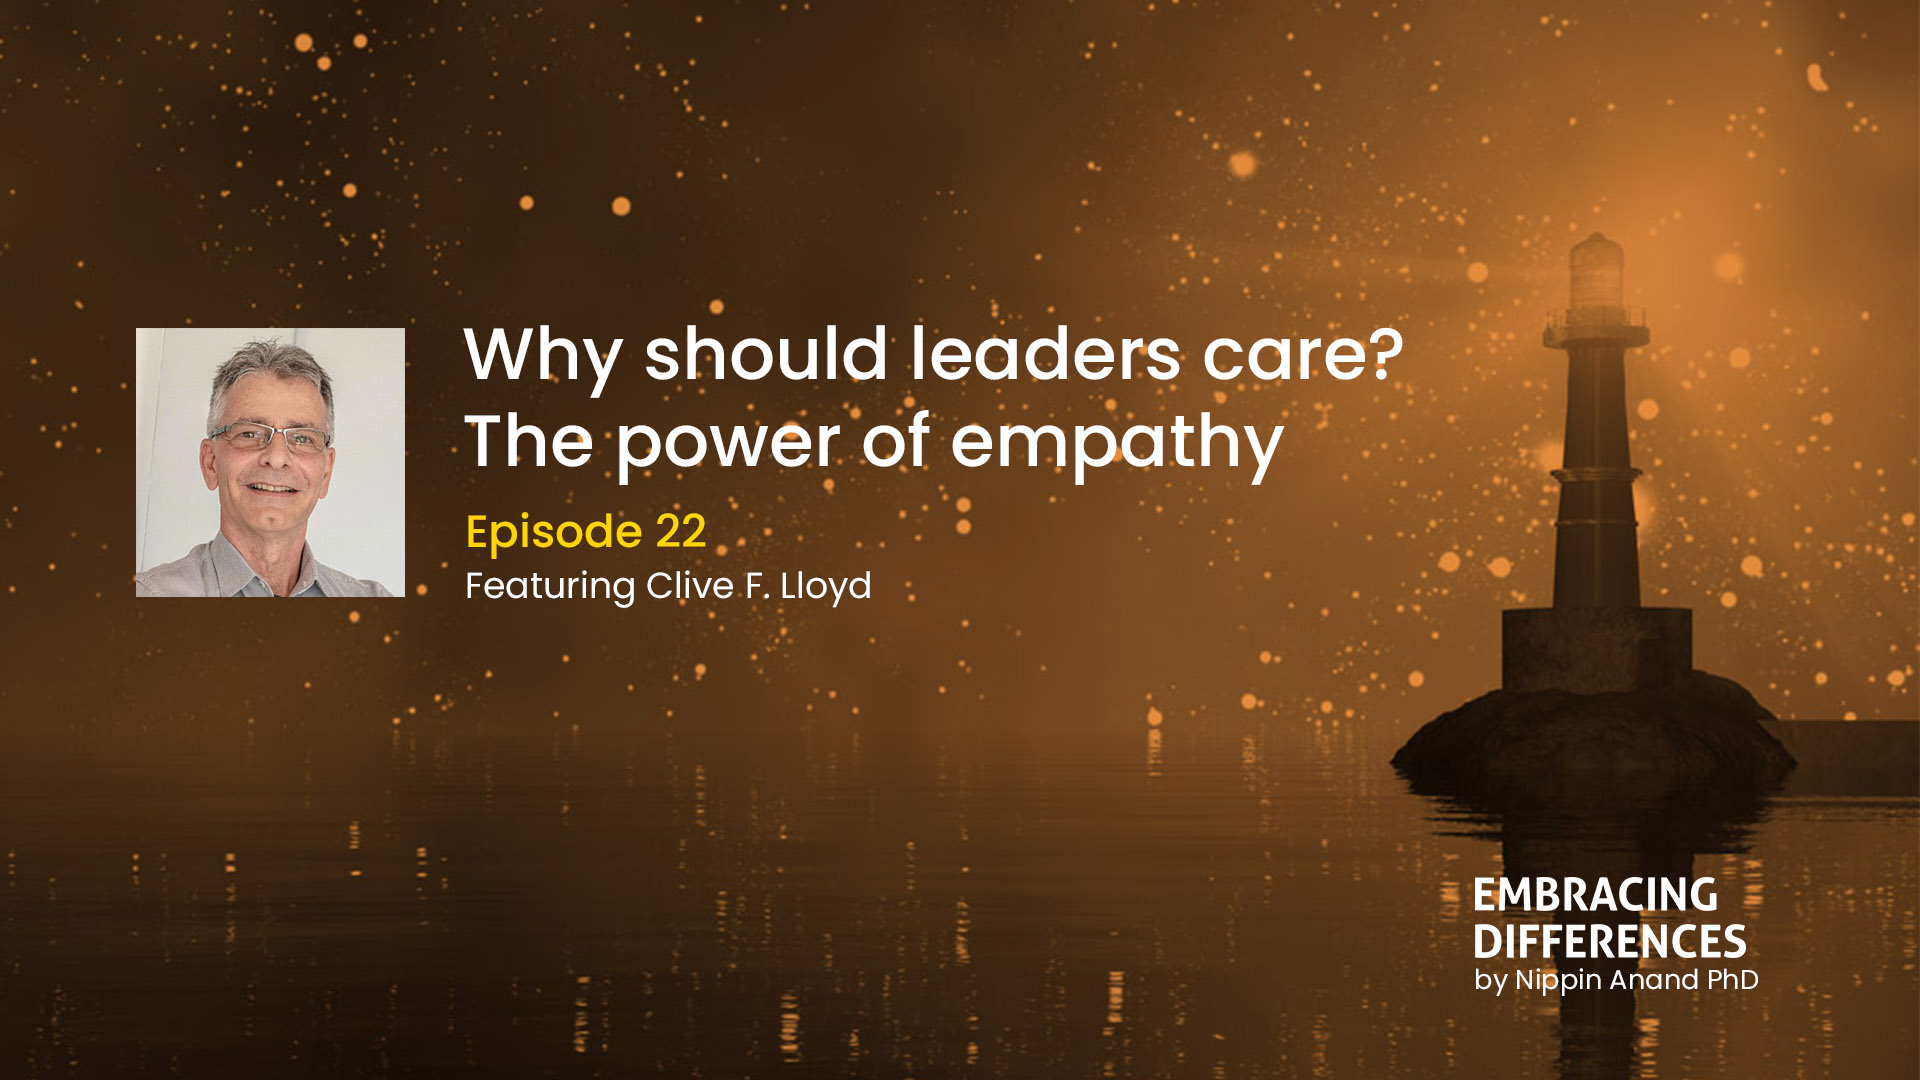 Why should leaders care? The power of empathy with Clive F. Lloyd